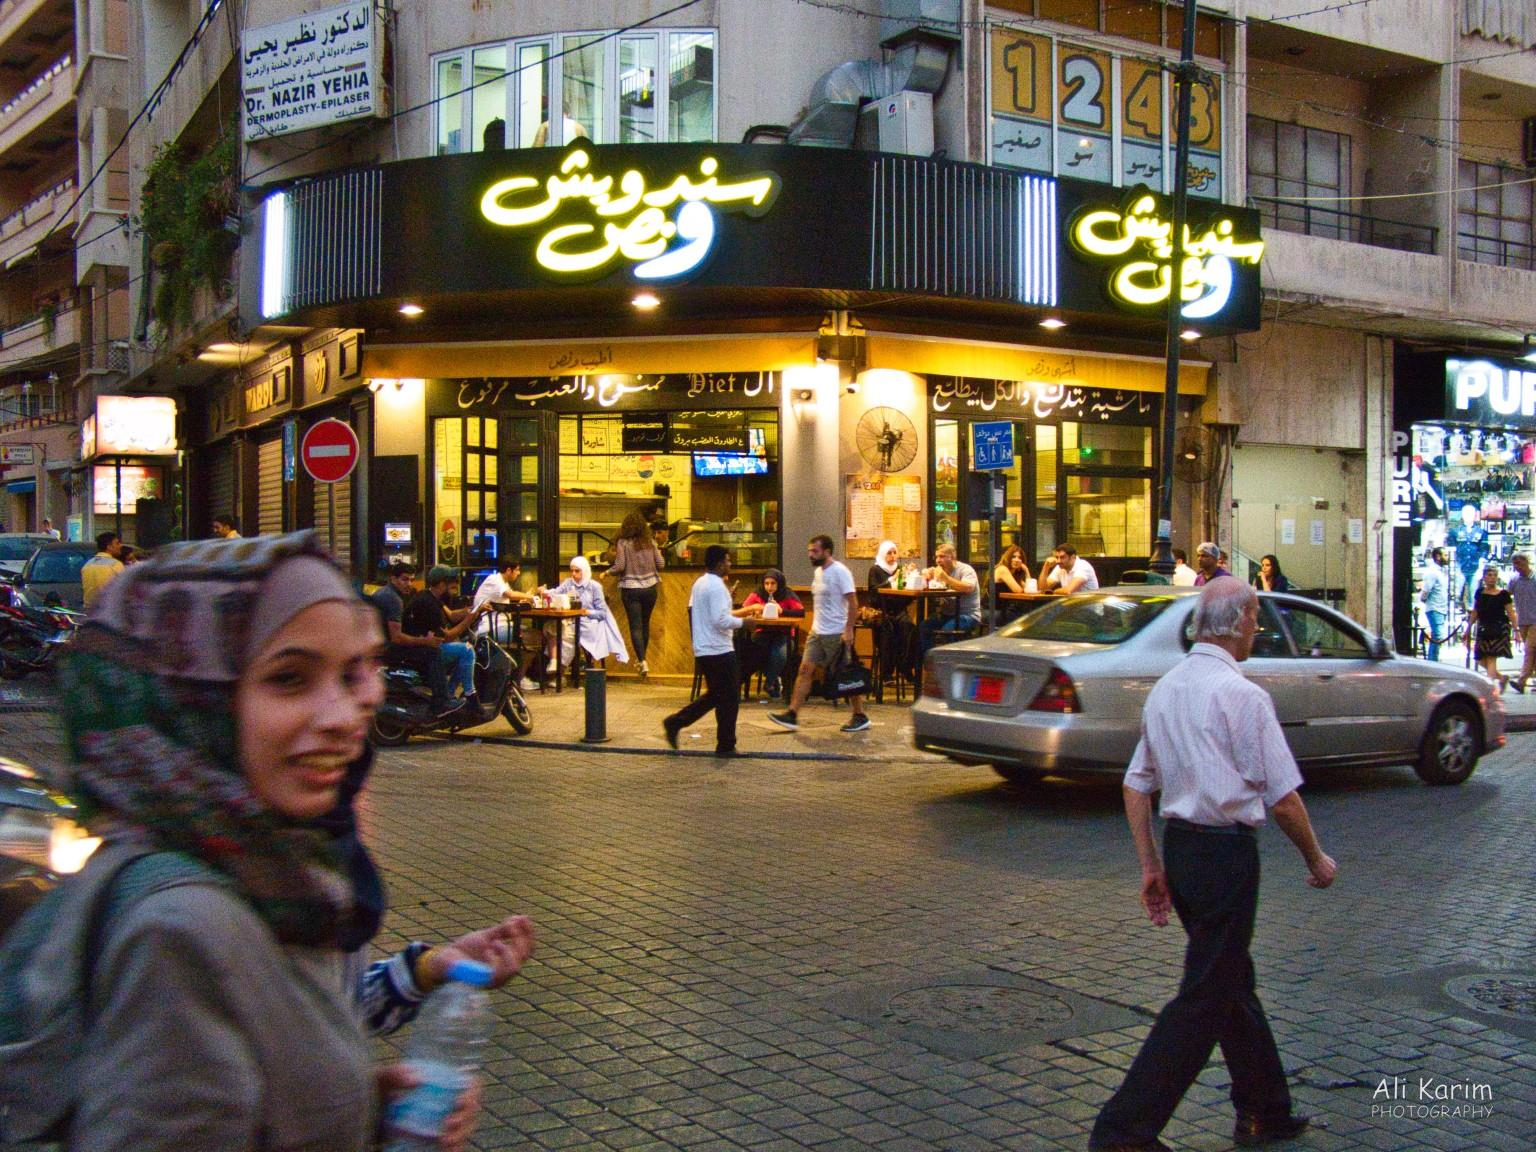 Beirut Typical scene of shops, outdoor eateries and life